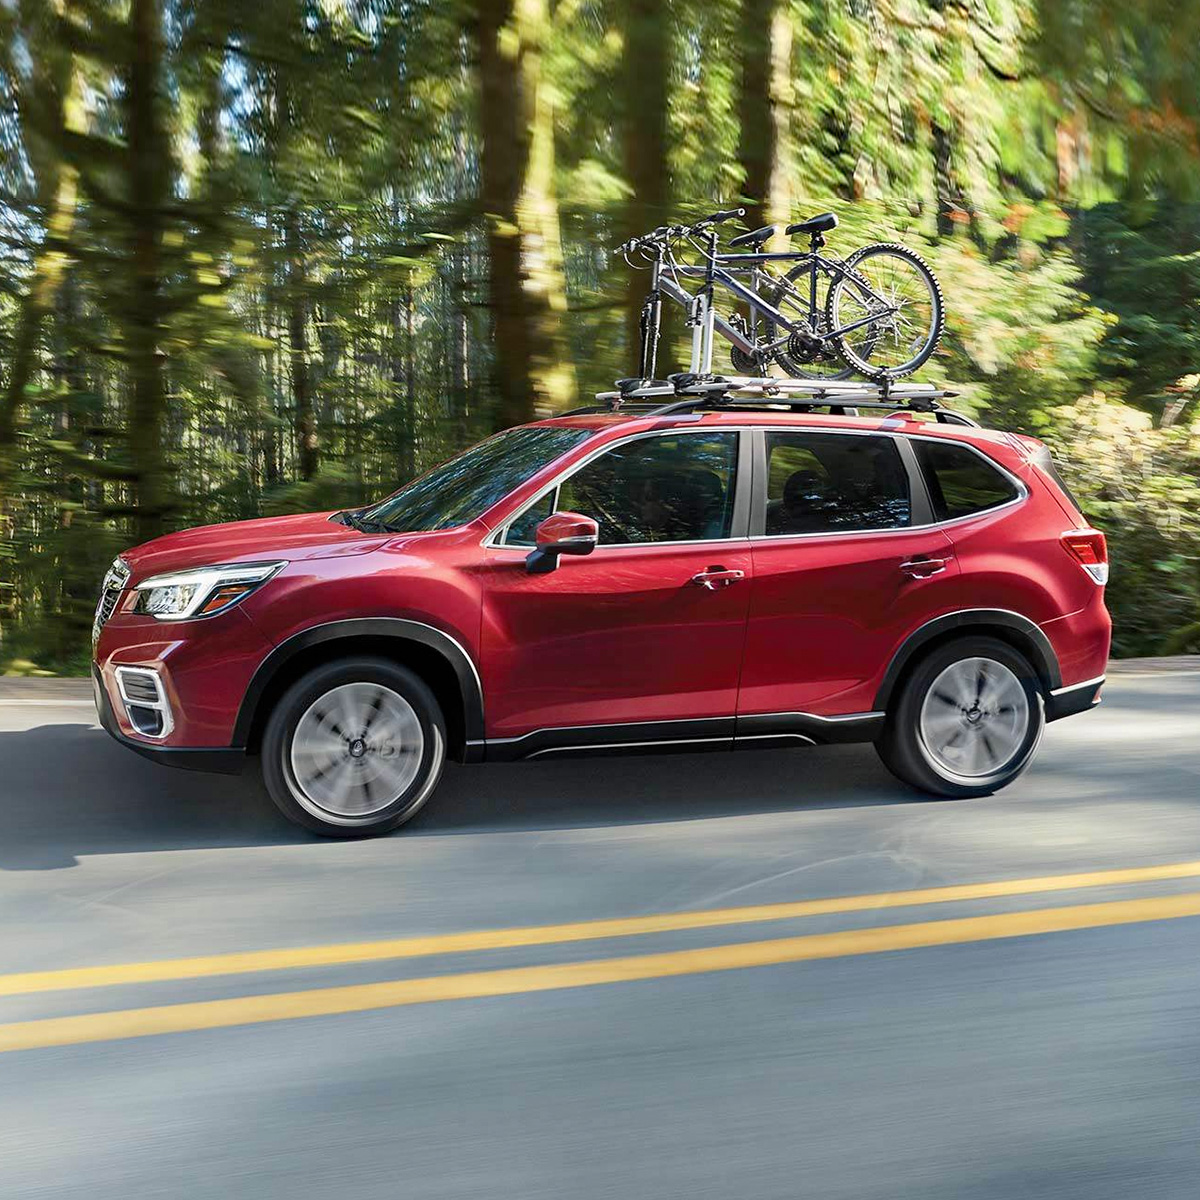 side profile of subaru forester suv in red color carrying bikes on top of the roof rack driving on the a road sorrounded by trees